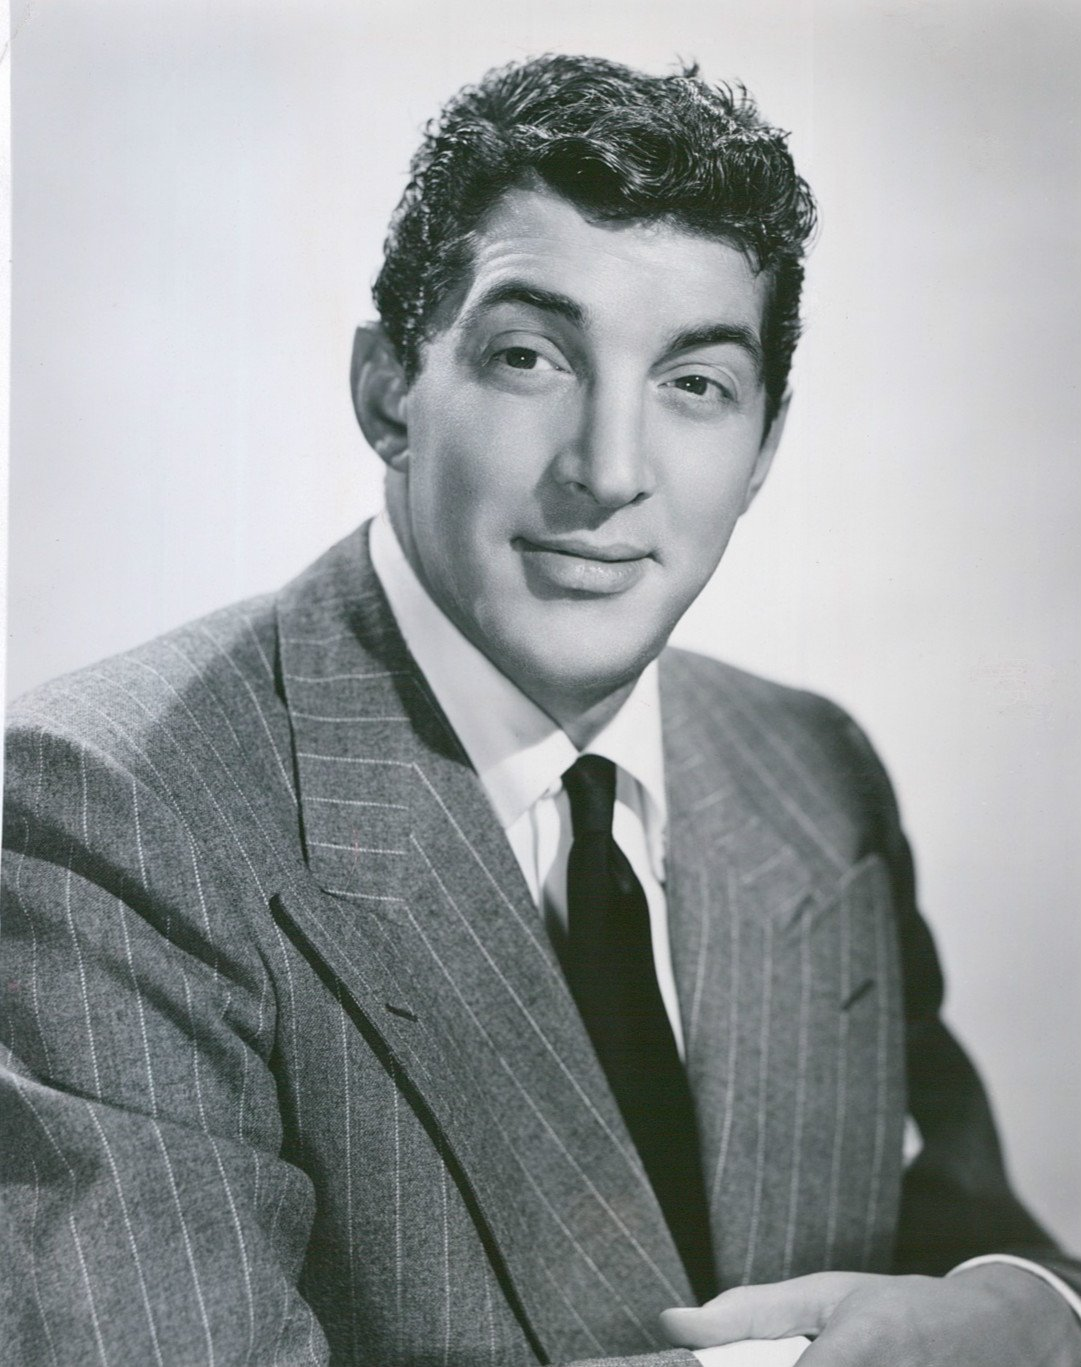 Photo of Dean Martin as he began an NBC show with Jerry Lewis, circa 1948. | Photo: Wikimedia Commons